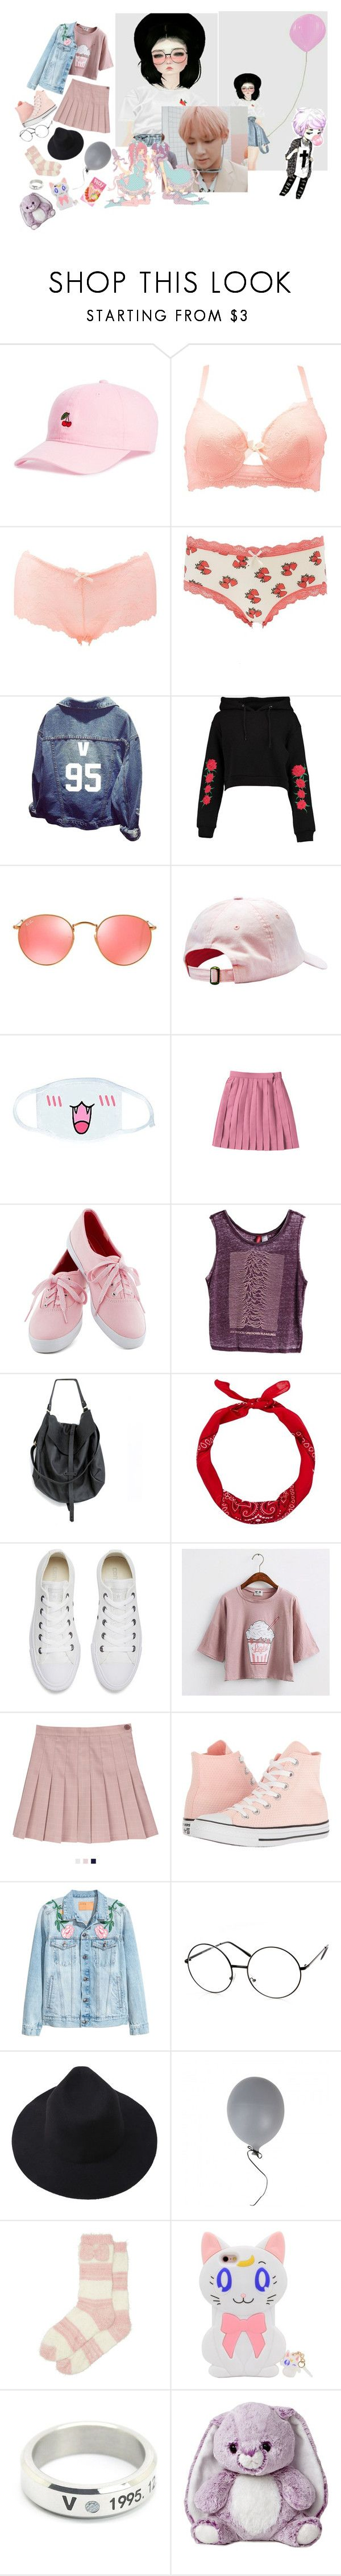 """""""- Peachy Girl -"""" by xxxaskingalexandriaxxx ❤ liked on Polyvore featuring Body Rags, Charlotte Russe, Boohoo, Ray-Ban, Levi's, New Look, Converse, GET LOST, Aurora World and plus size clothing"""